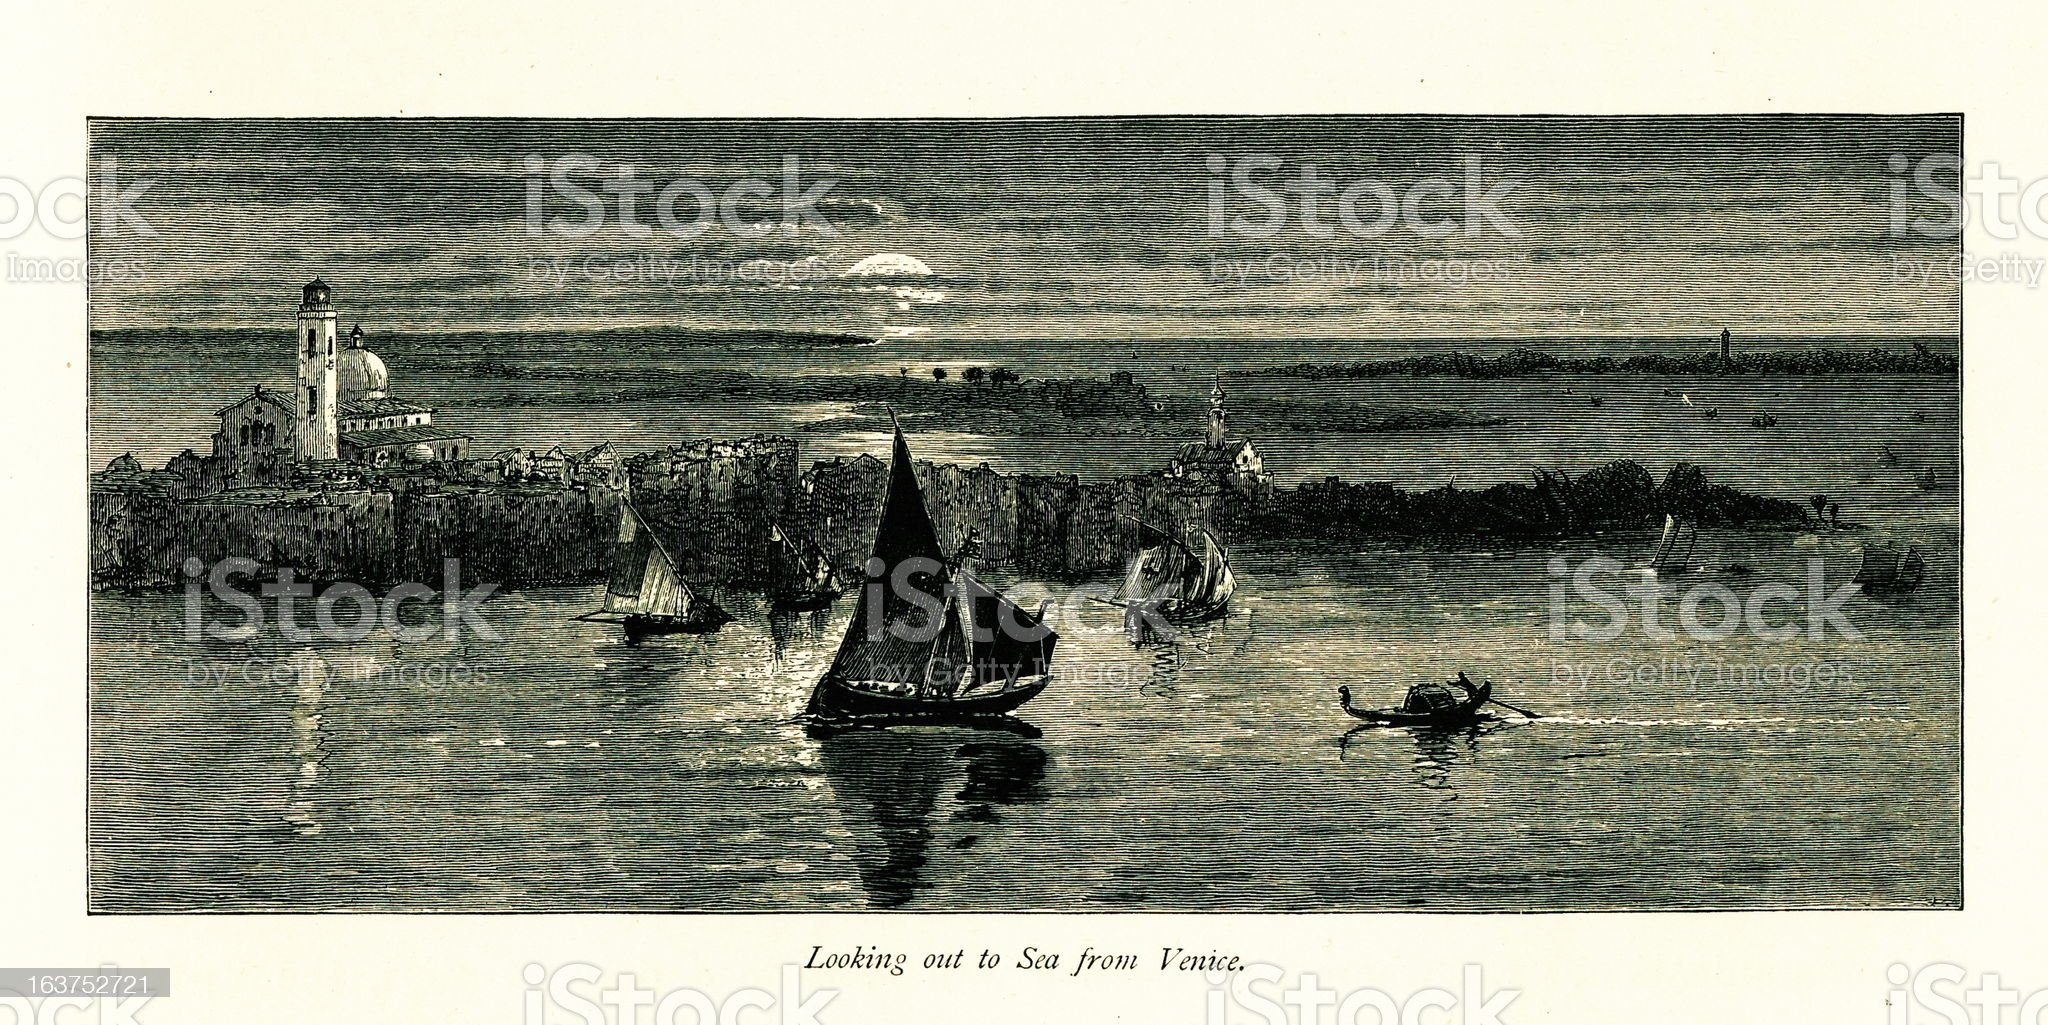 Adriatic Sea, Venice, Italy I Antique European Illustrations royalty-free stock vector art